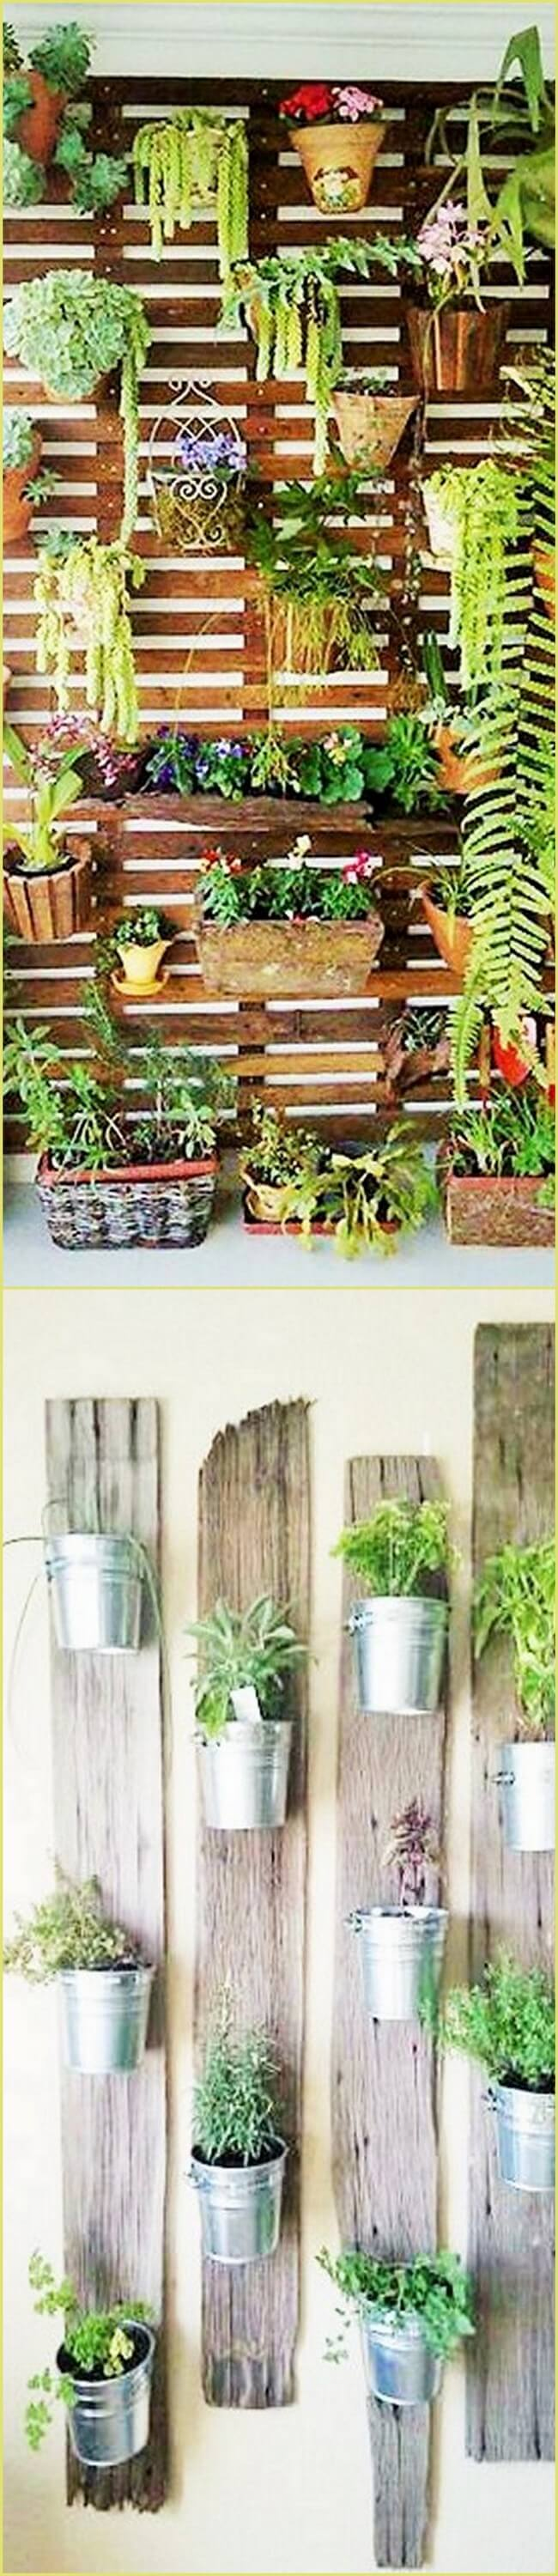 Diy-garden-ideas-and-outdoor-Plan